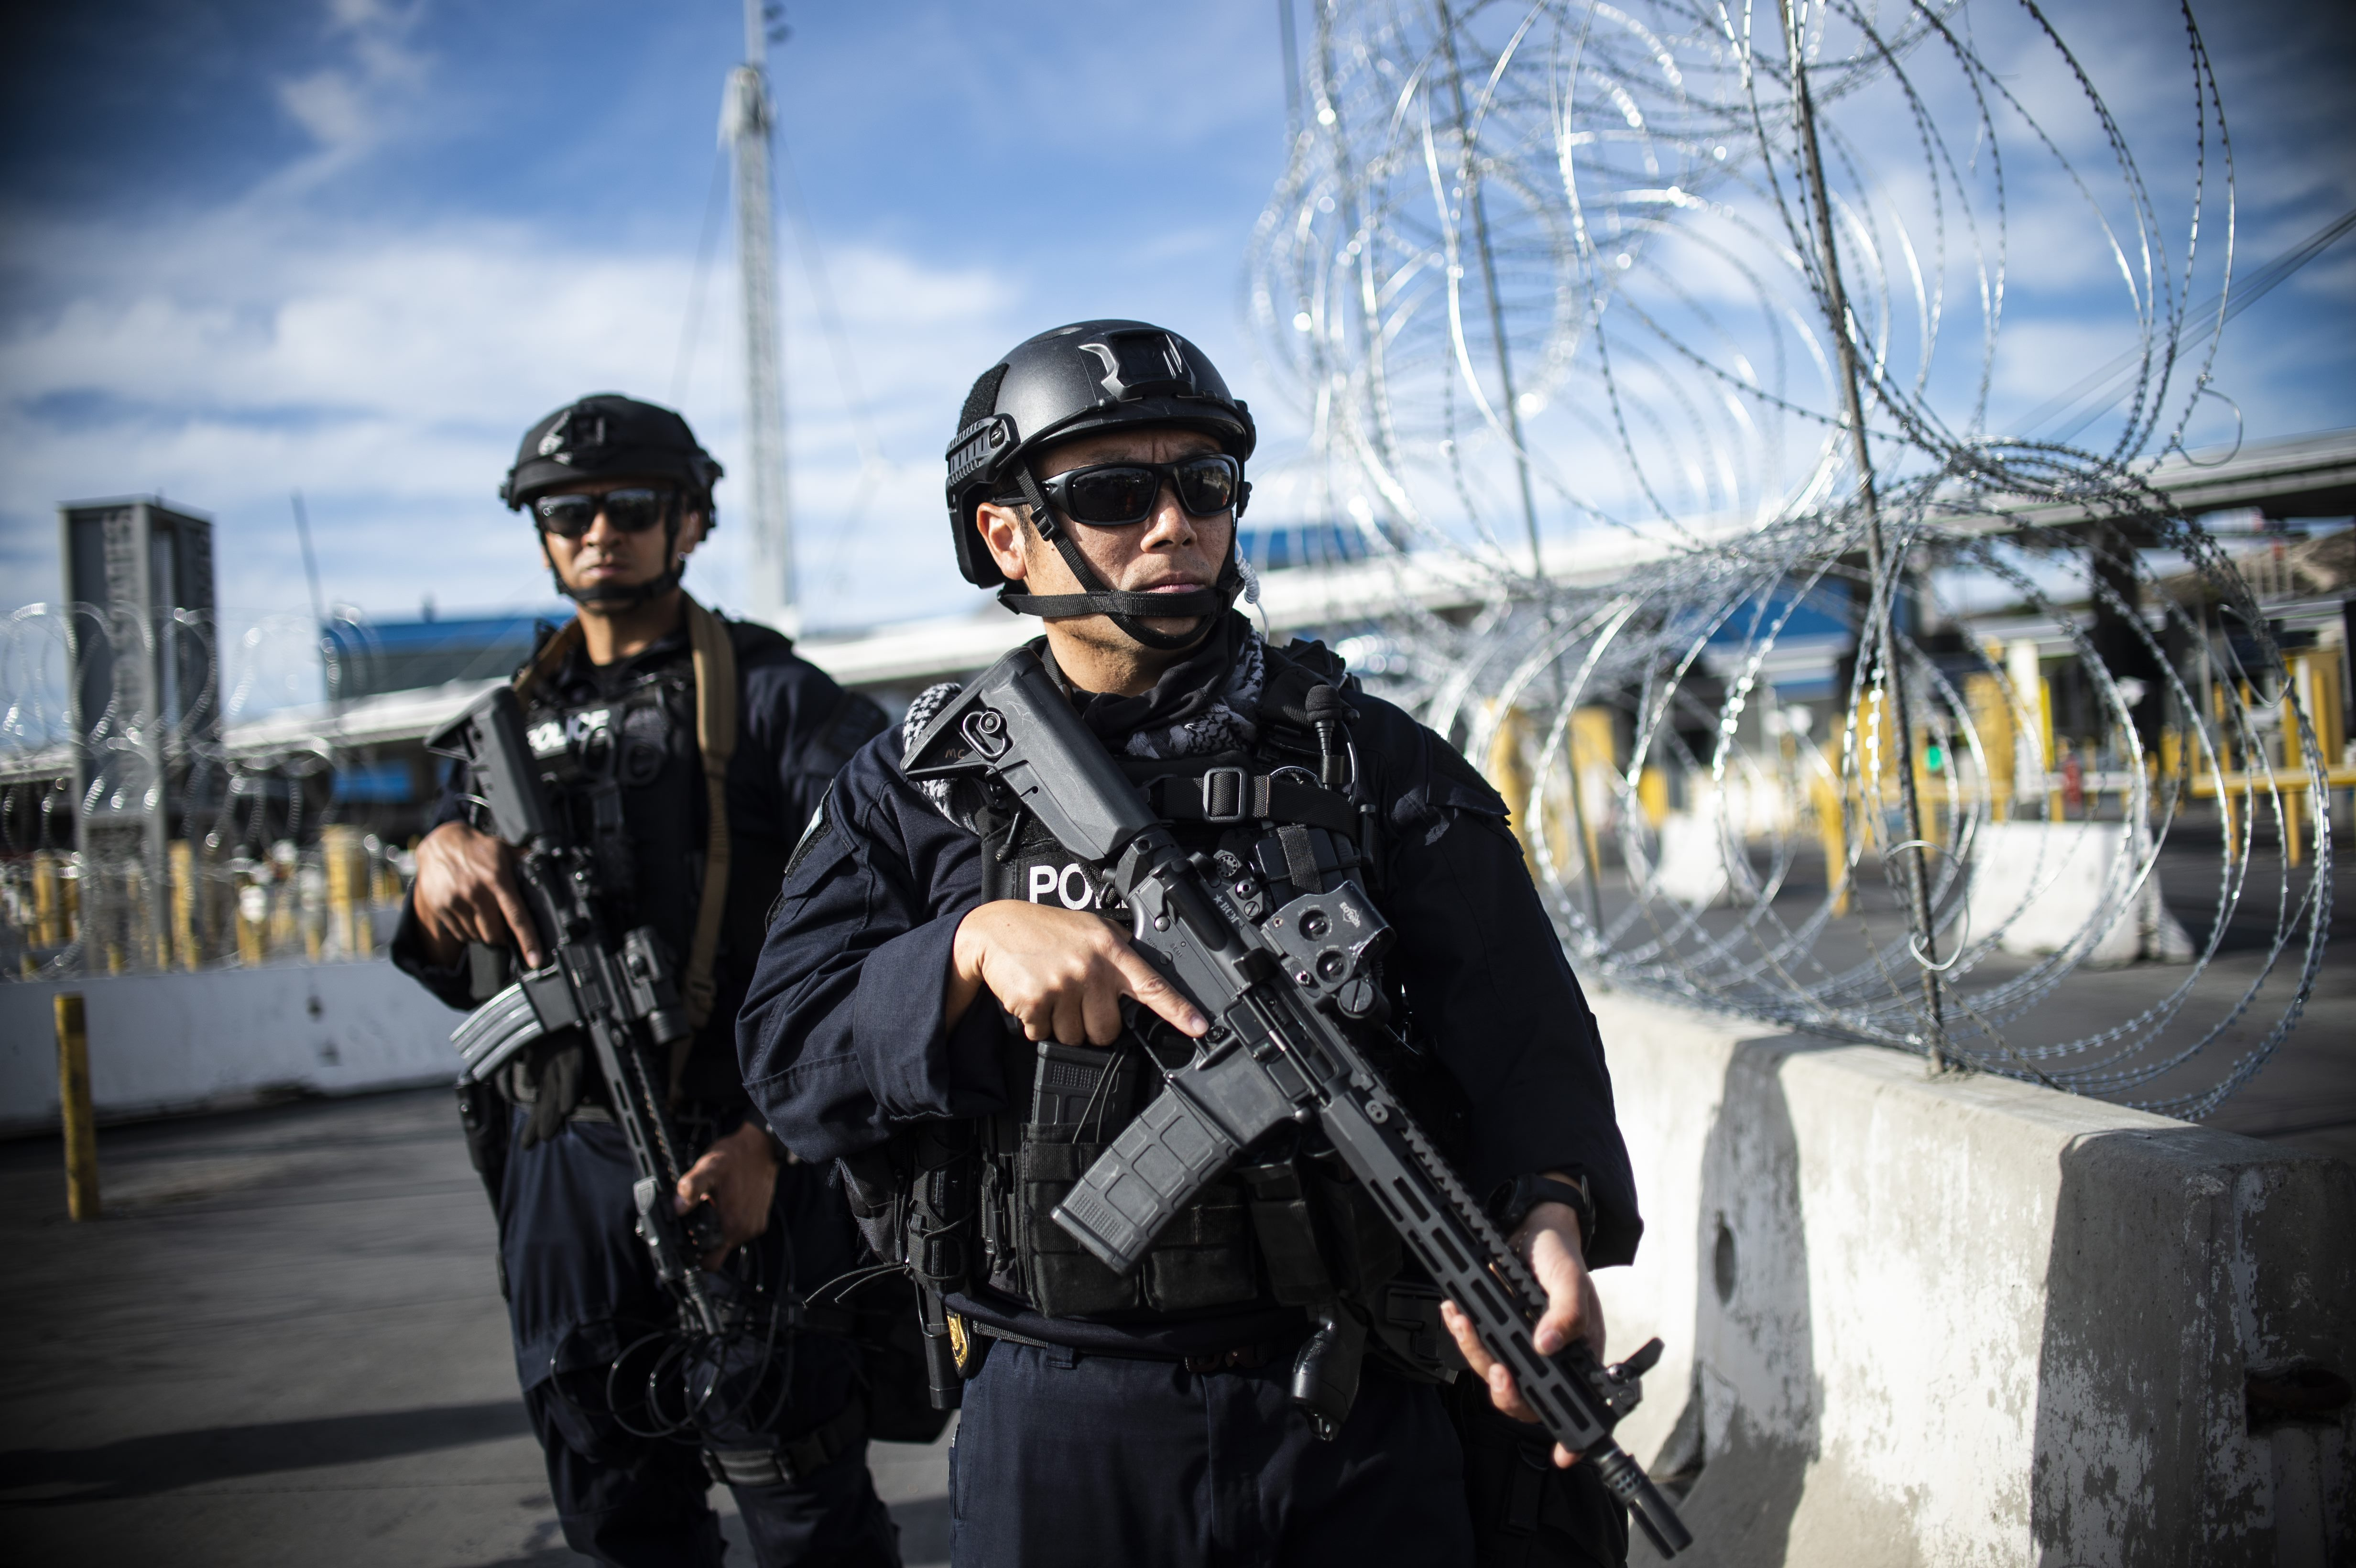 TOPSHOT - US Customs and Border Protection (CBP) take part in a operational readiness exercise at the San Ysidro port of entry in the US, as seen from Tijuana, Baja California State, Mexico, on November 22, 2018 as thousands of Central American migrants -mostly Hondurans- have started arriving at the Mexico-US border. (PEDRO PARDO/AFP/Getty Images)